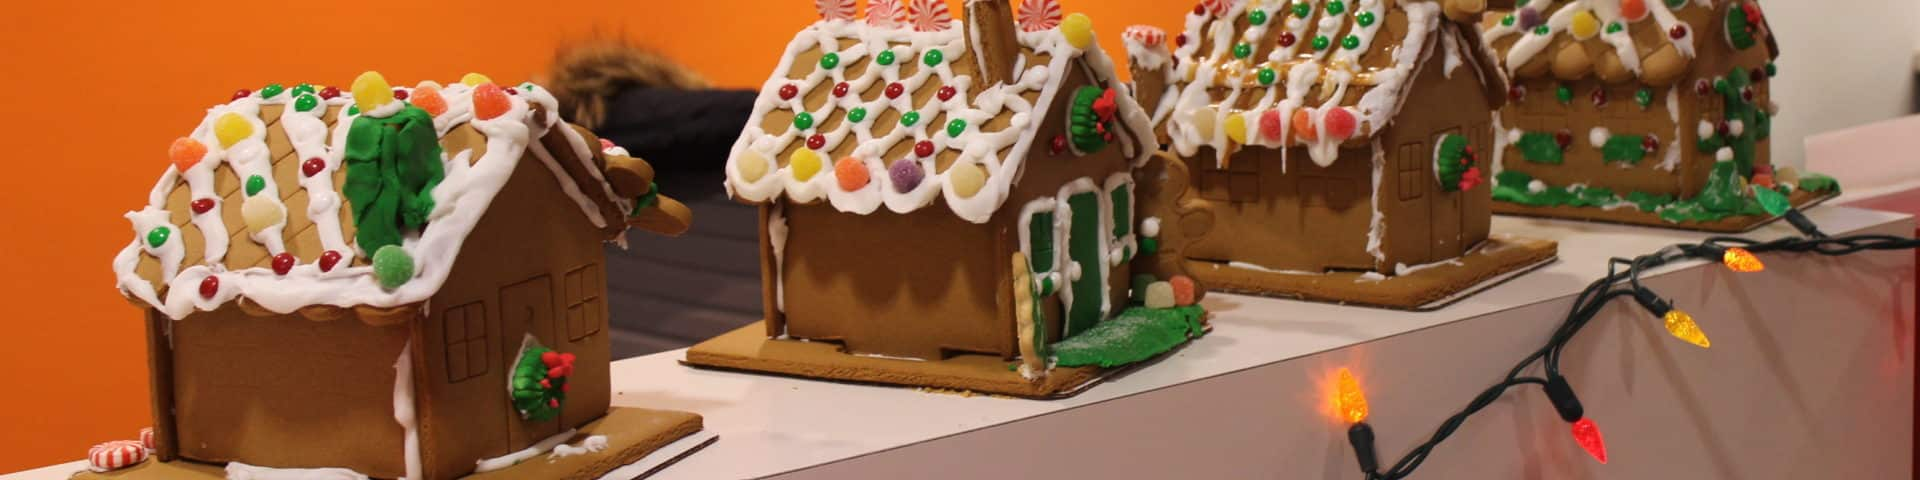 gingerbread houses made during a christmas team building activity